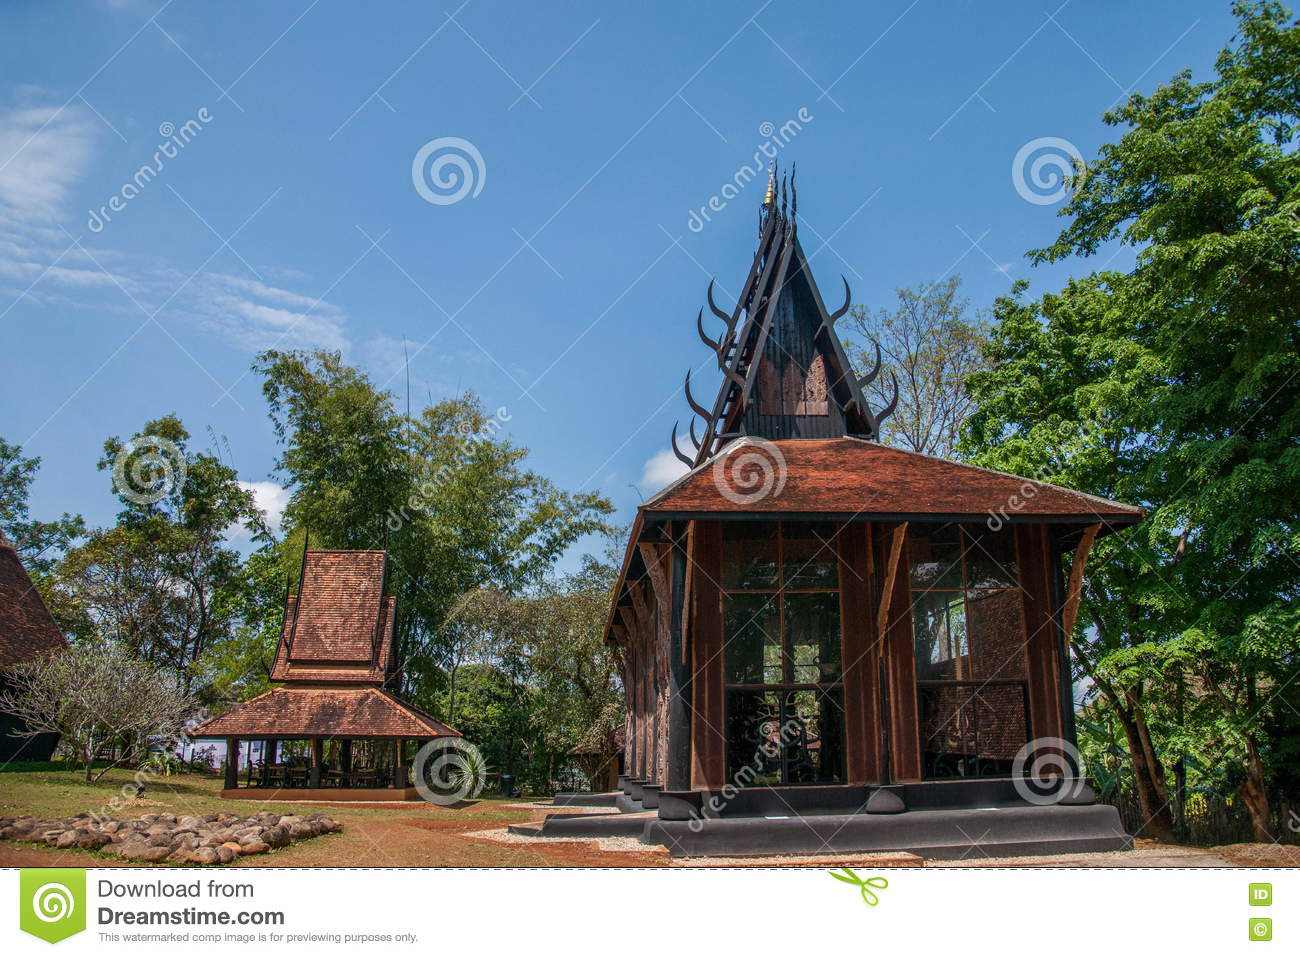 Chiang Rai in northern Thailand Black House Museum